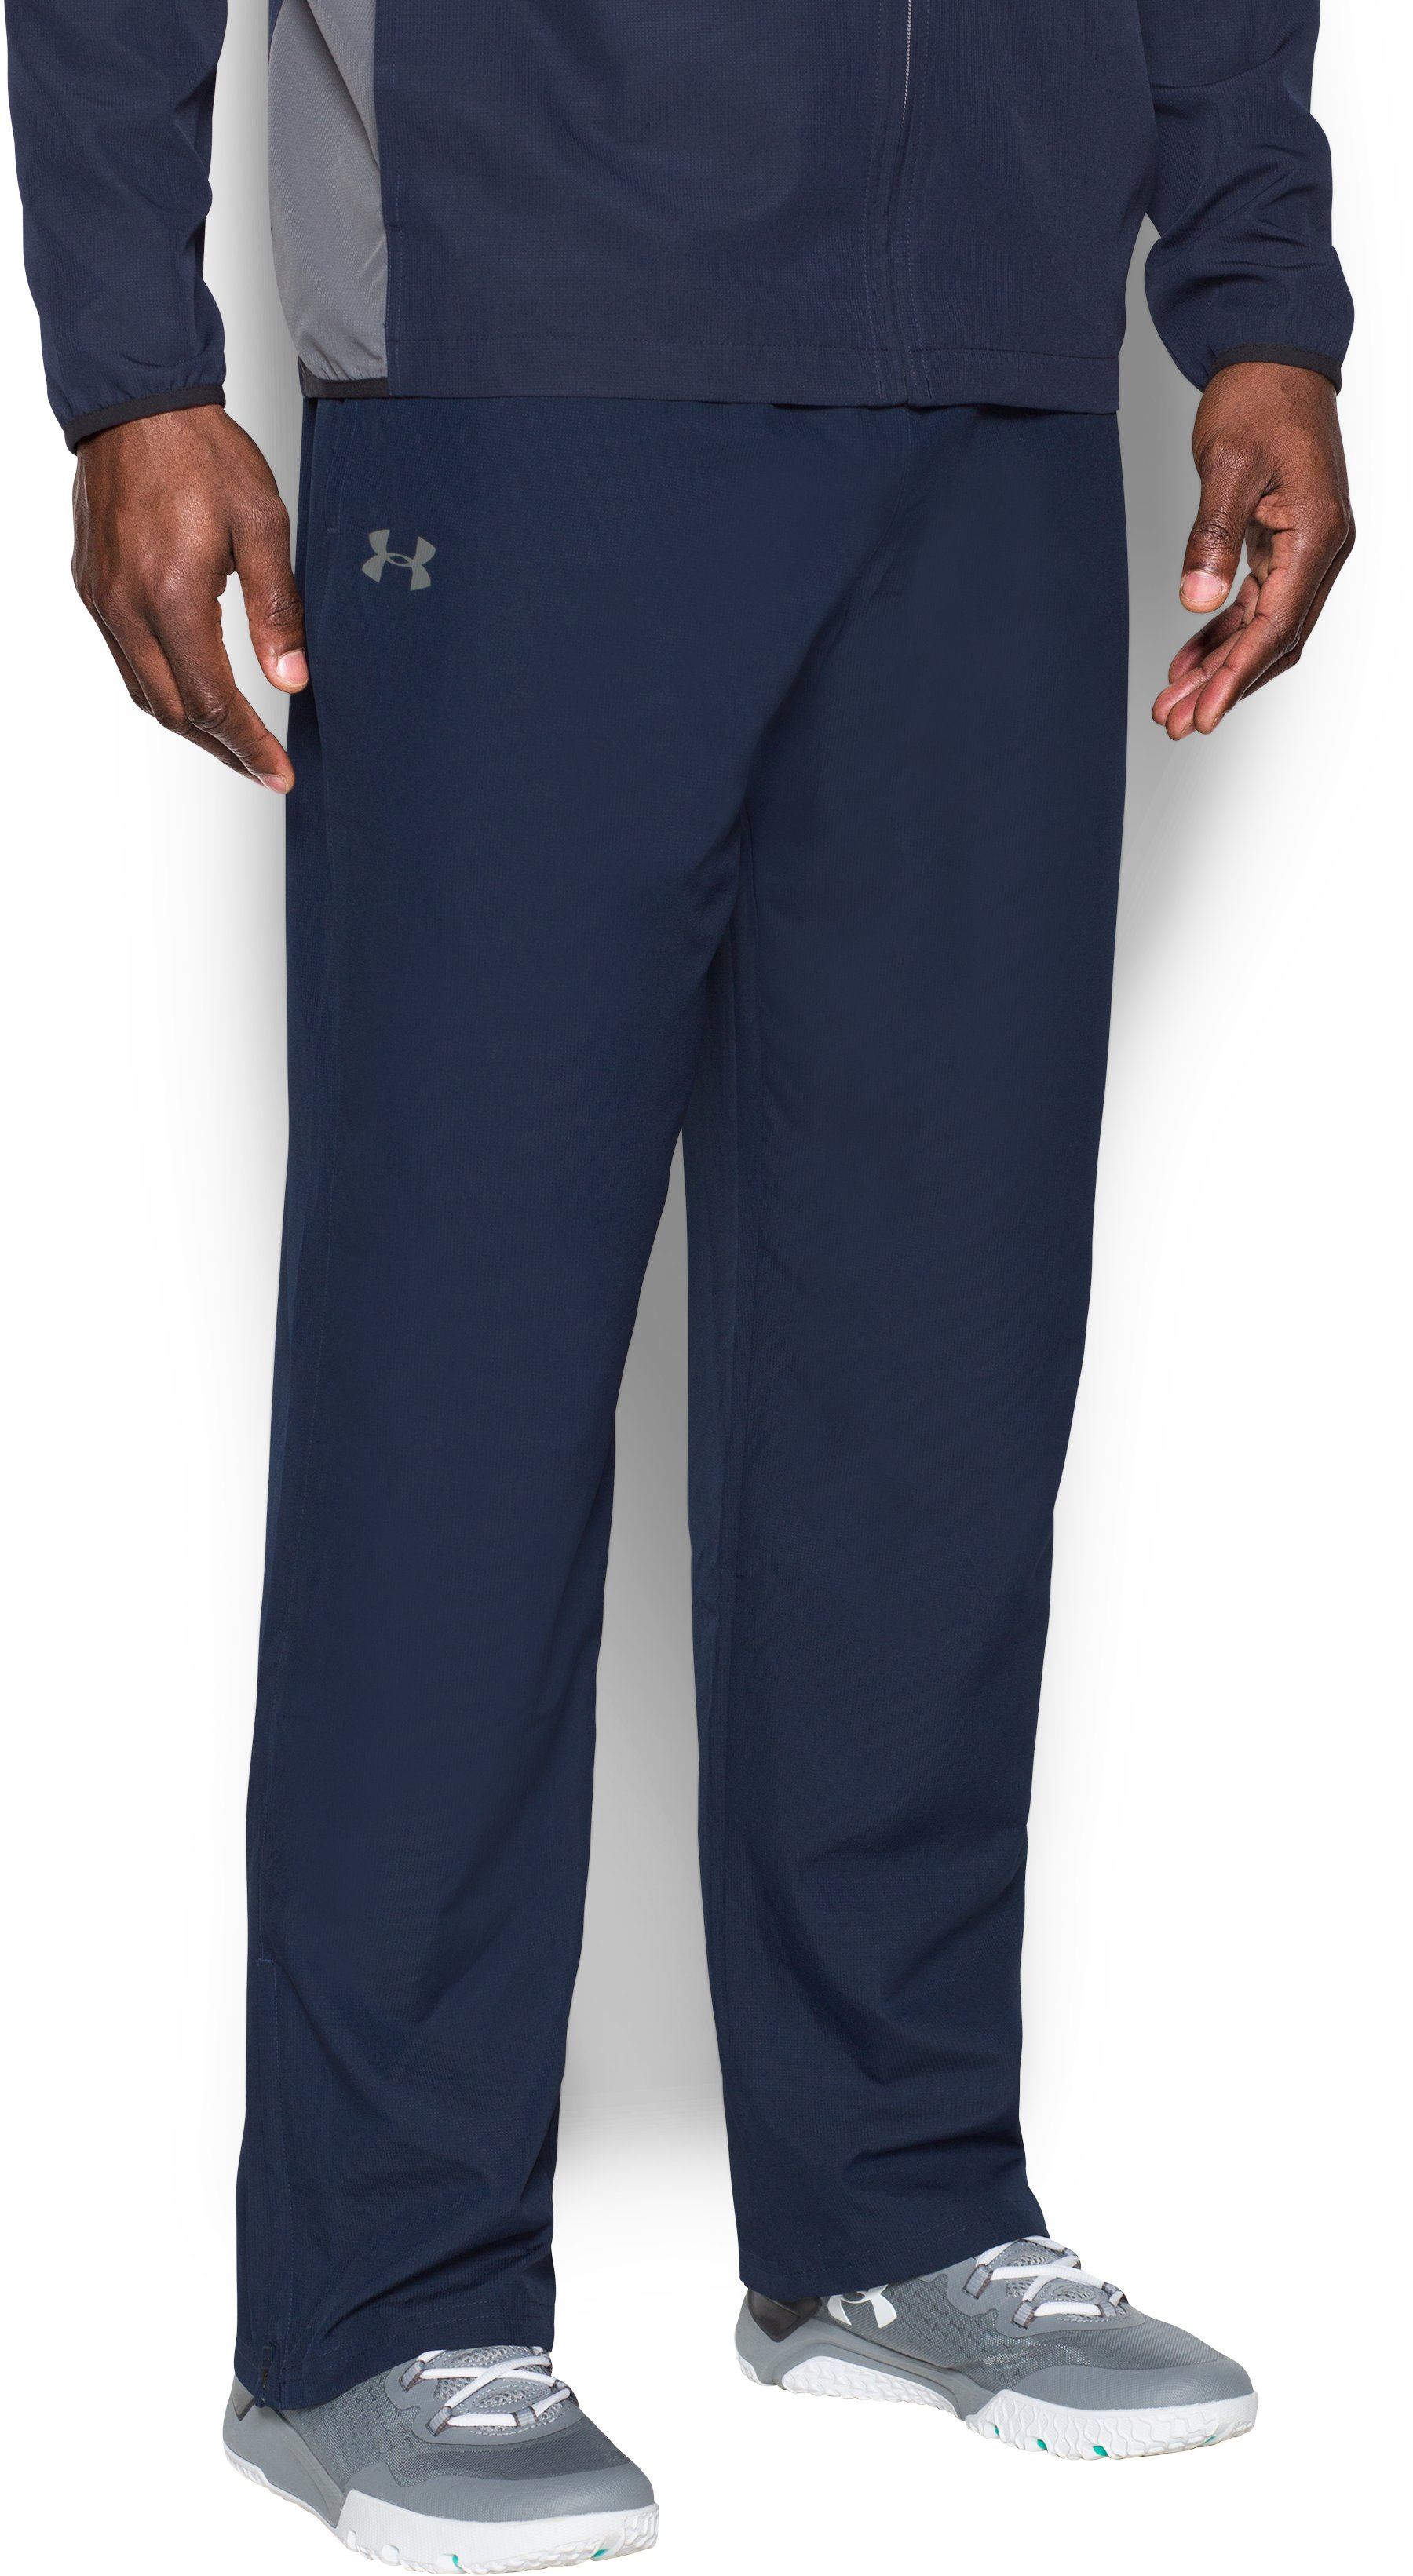 midnight navy pants Men's UA Vital Warm-Up Pants Comfy & Warm!...Good pockets....Great Fit !